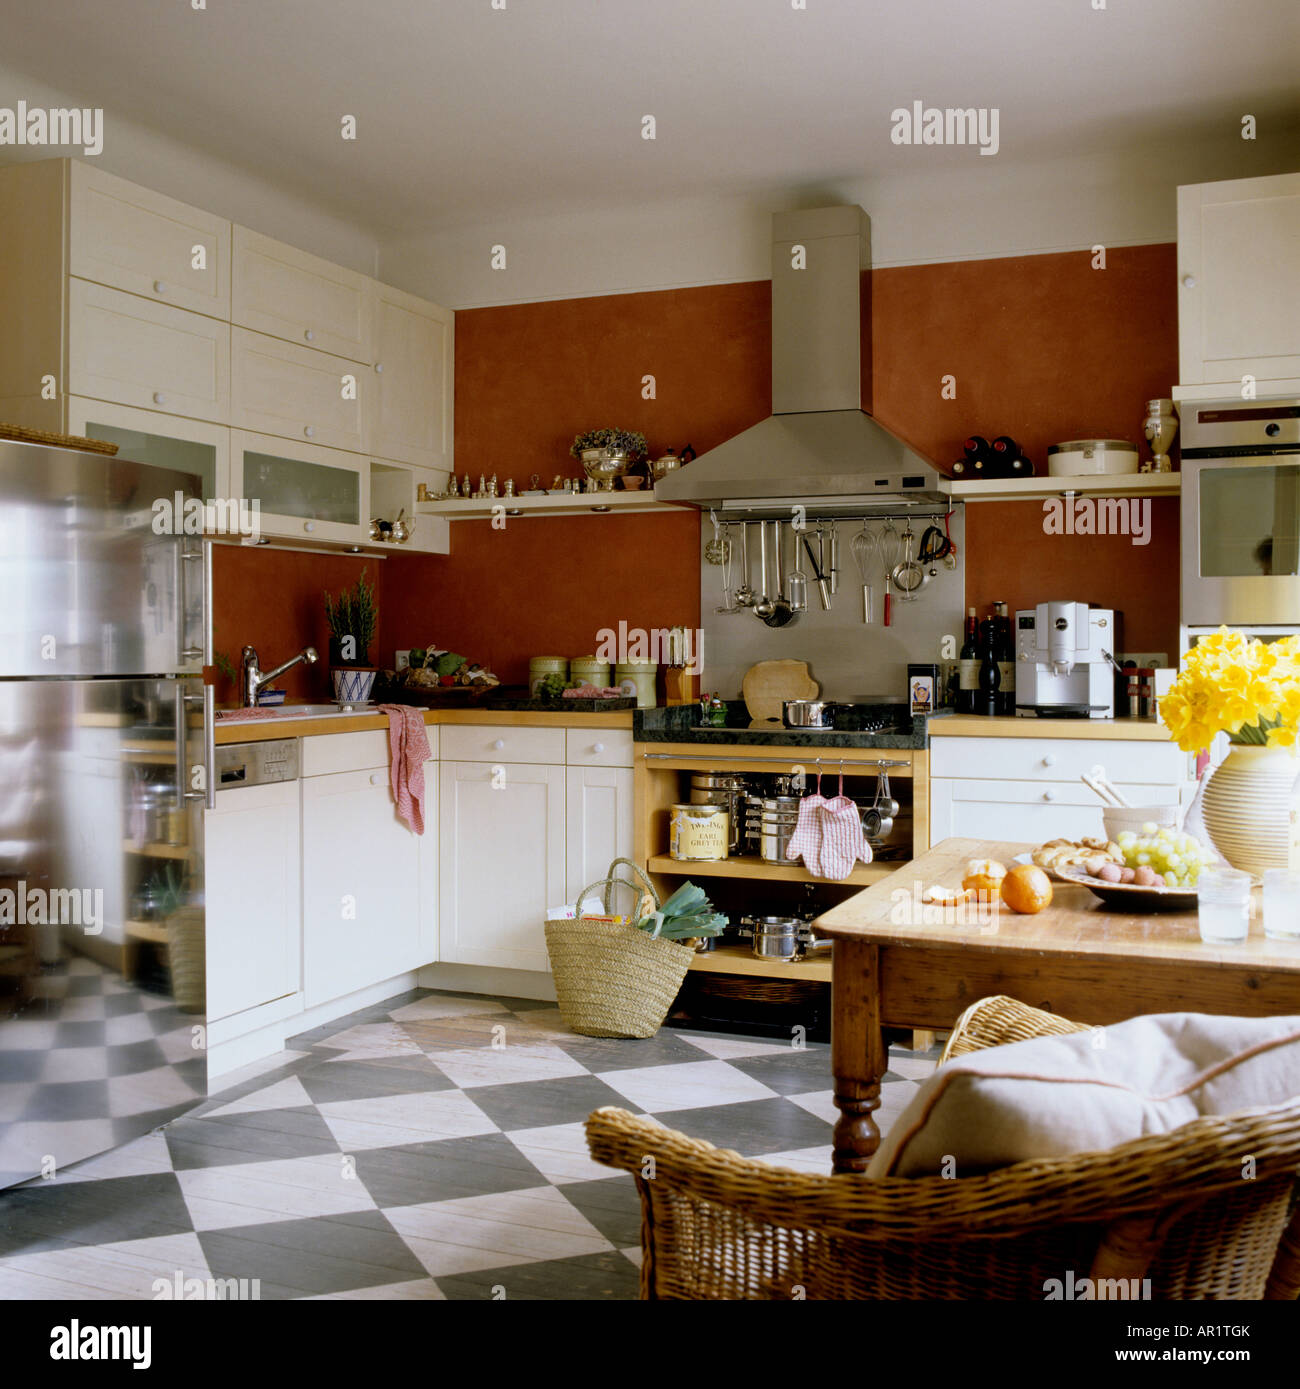 fitted kitchen with checkerboard floor Stock Photo